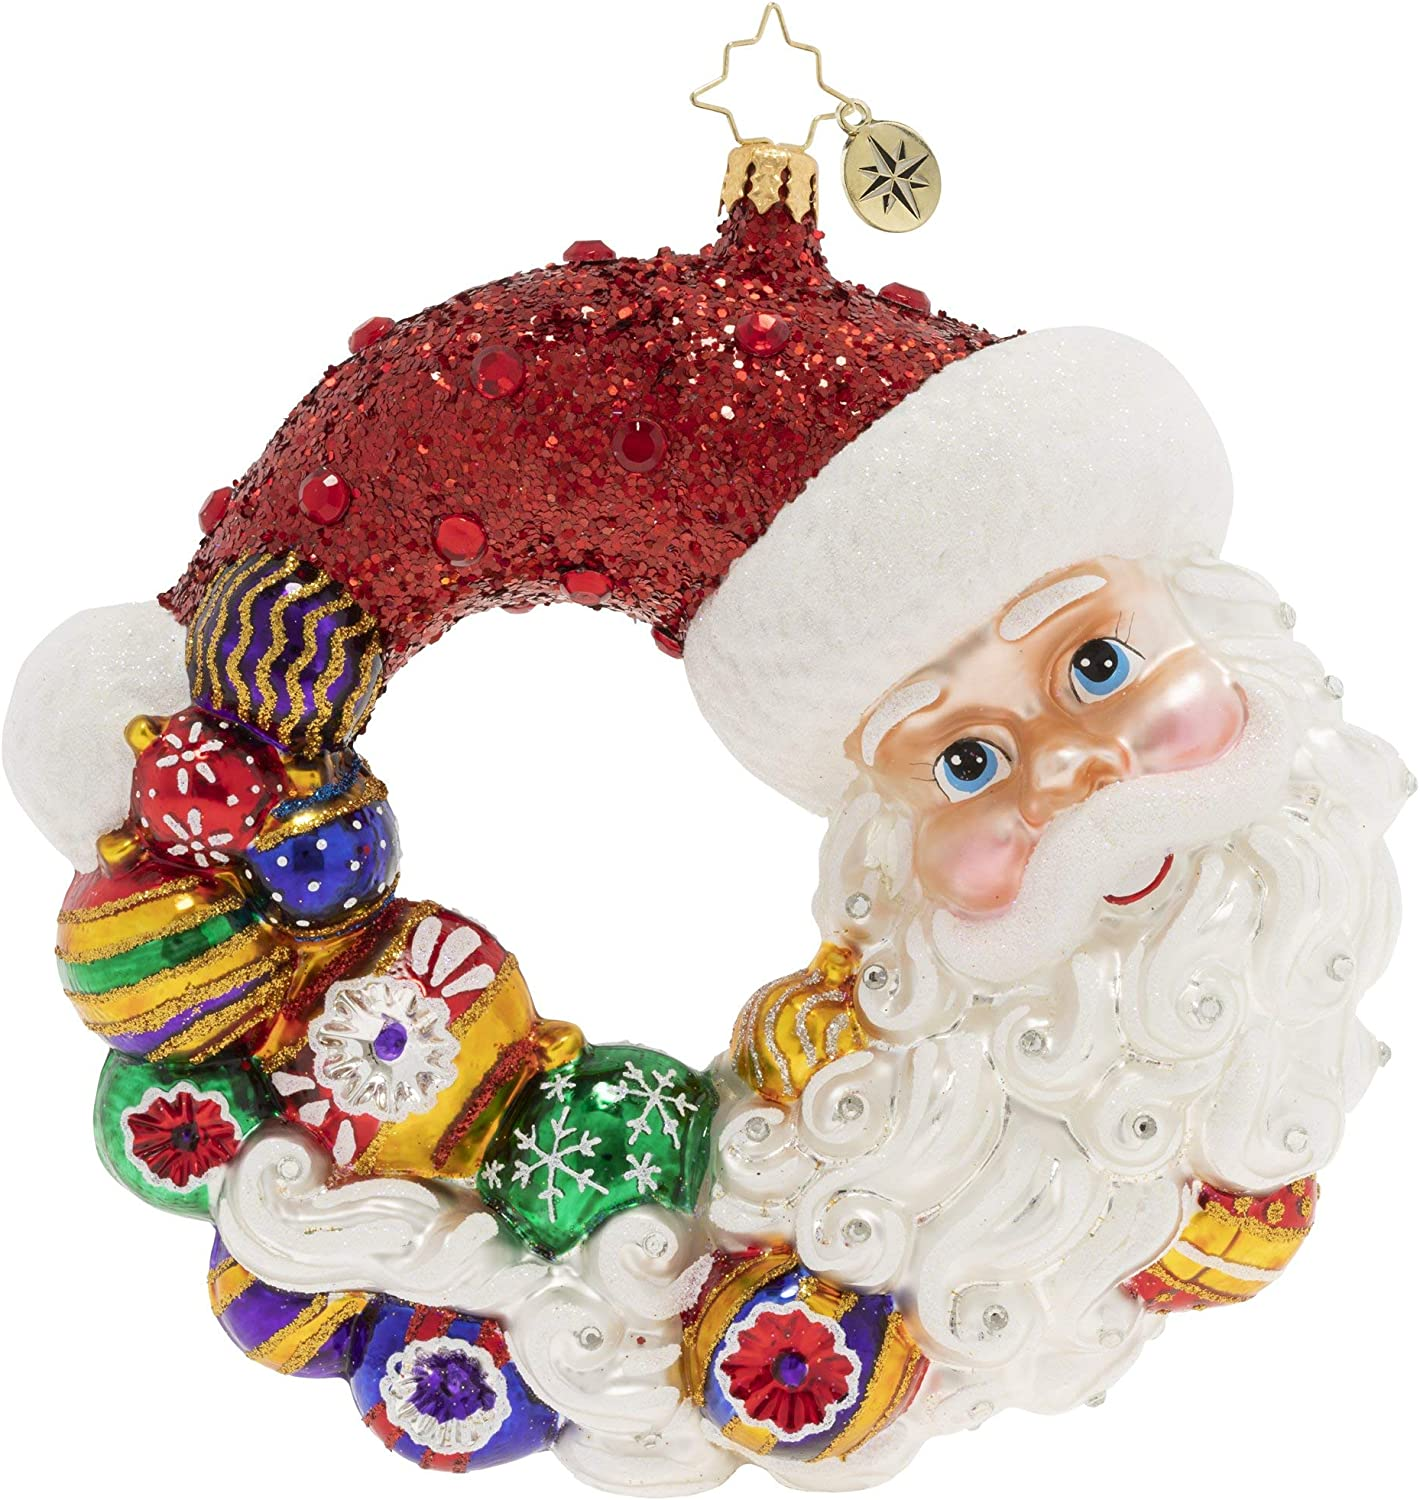 Christopher cheap Radko Hand-Crafted European Glass Christmas Super beauty product restock quality top! Ornament